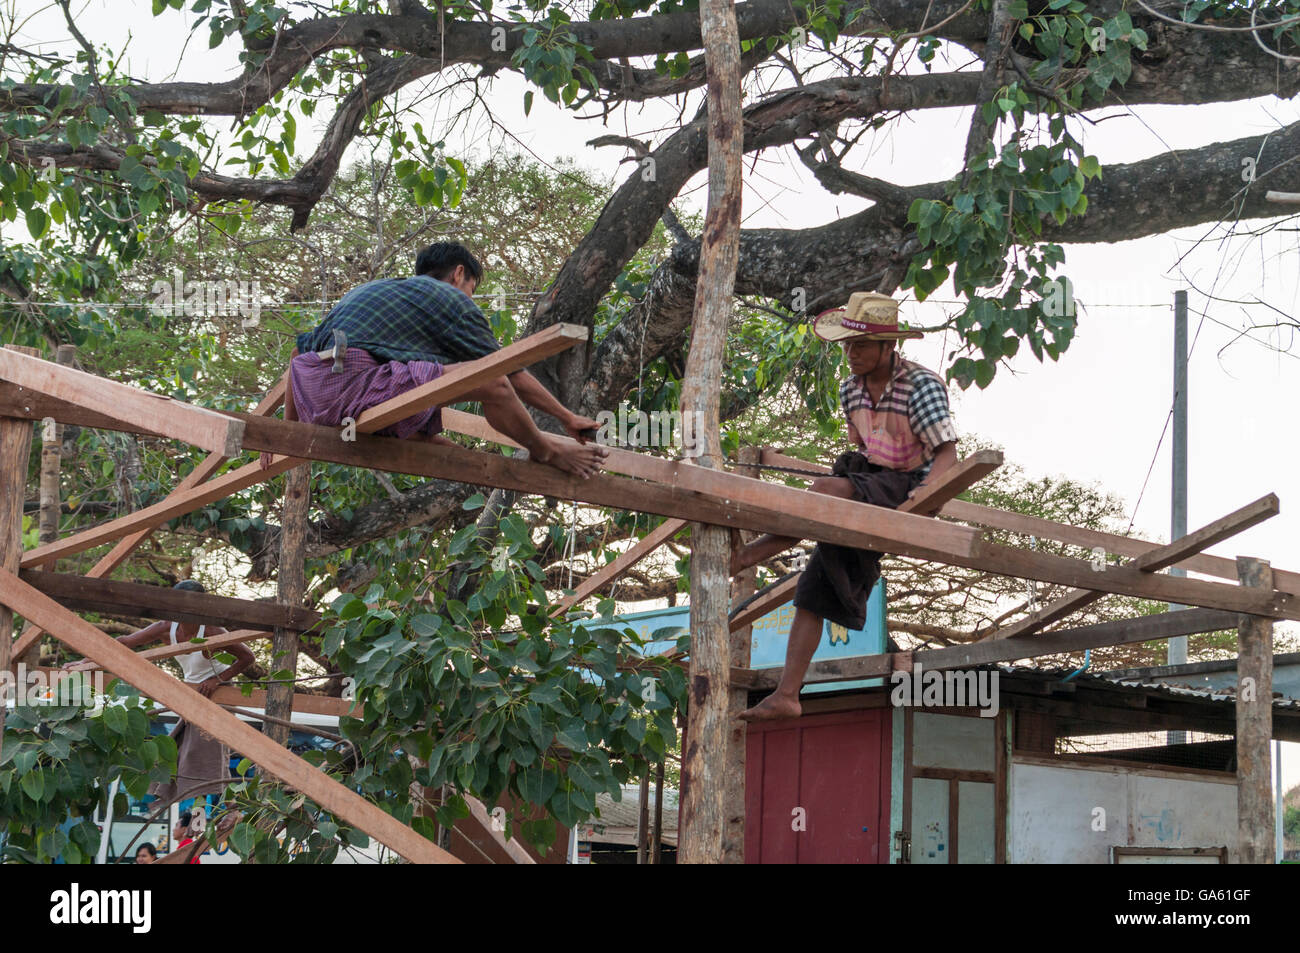 Carpenters working on a house construction site in Myanmar. - Stock Image